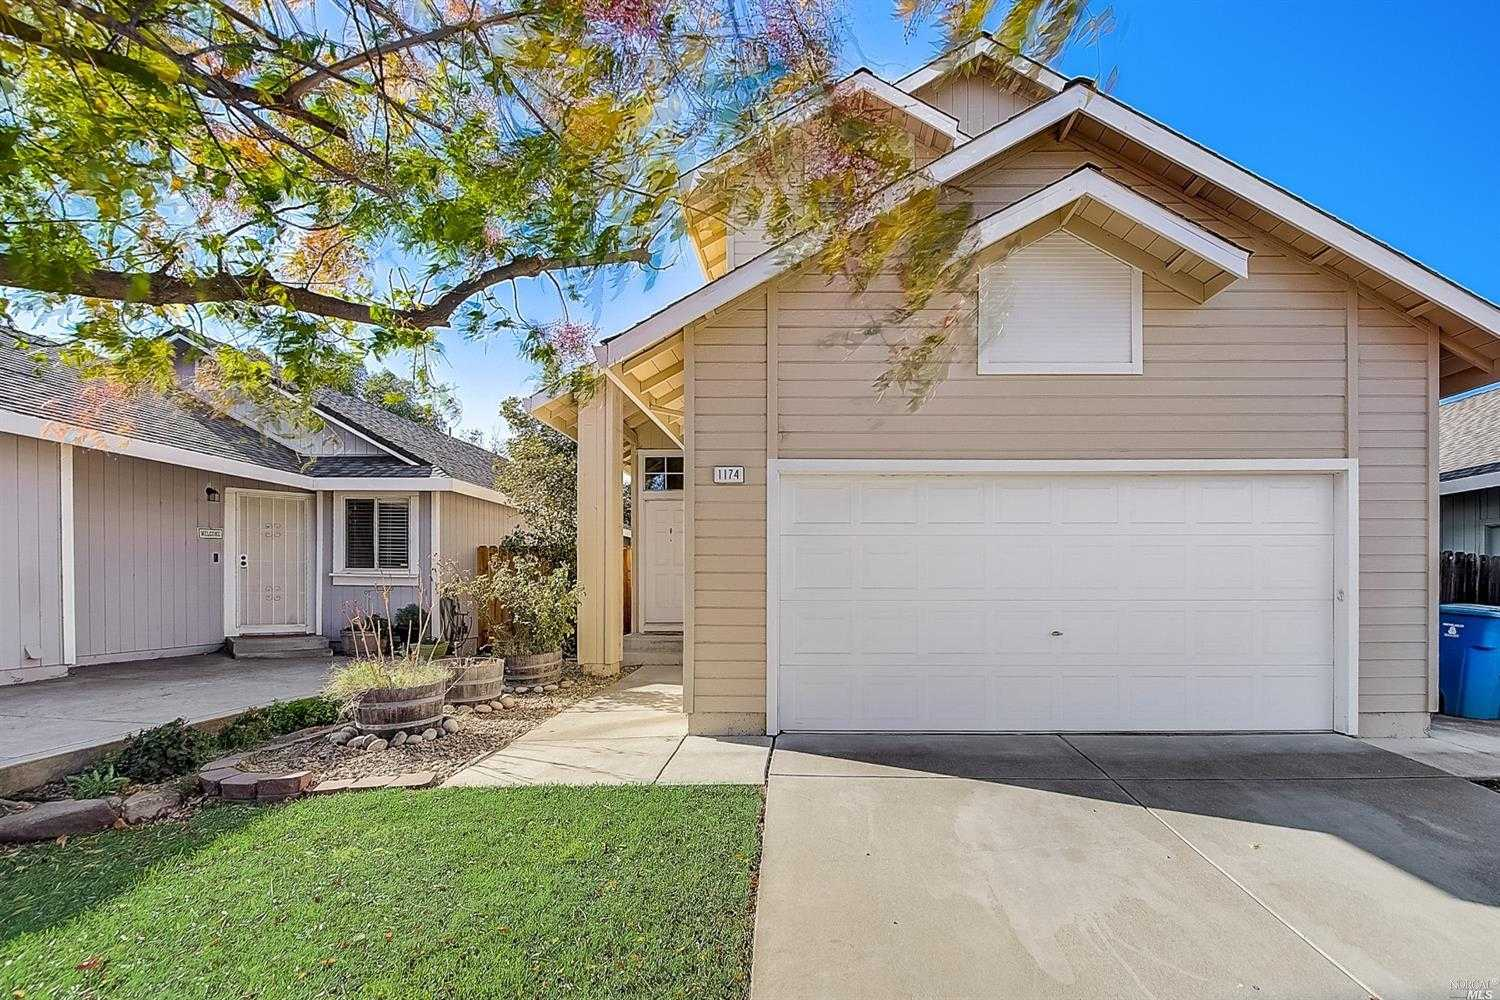 $443,000 - 3Br/3Ba -  for Sale in Vacaville